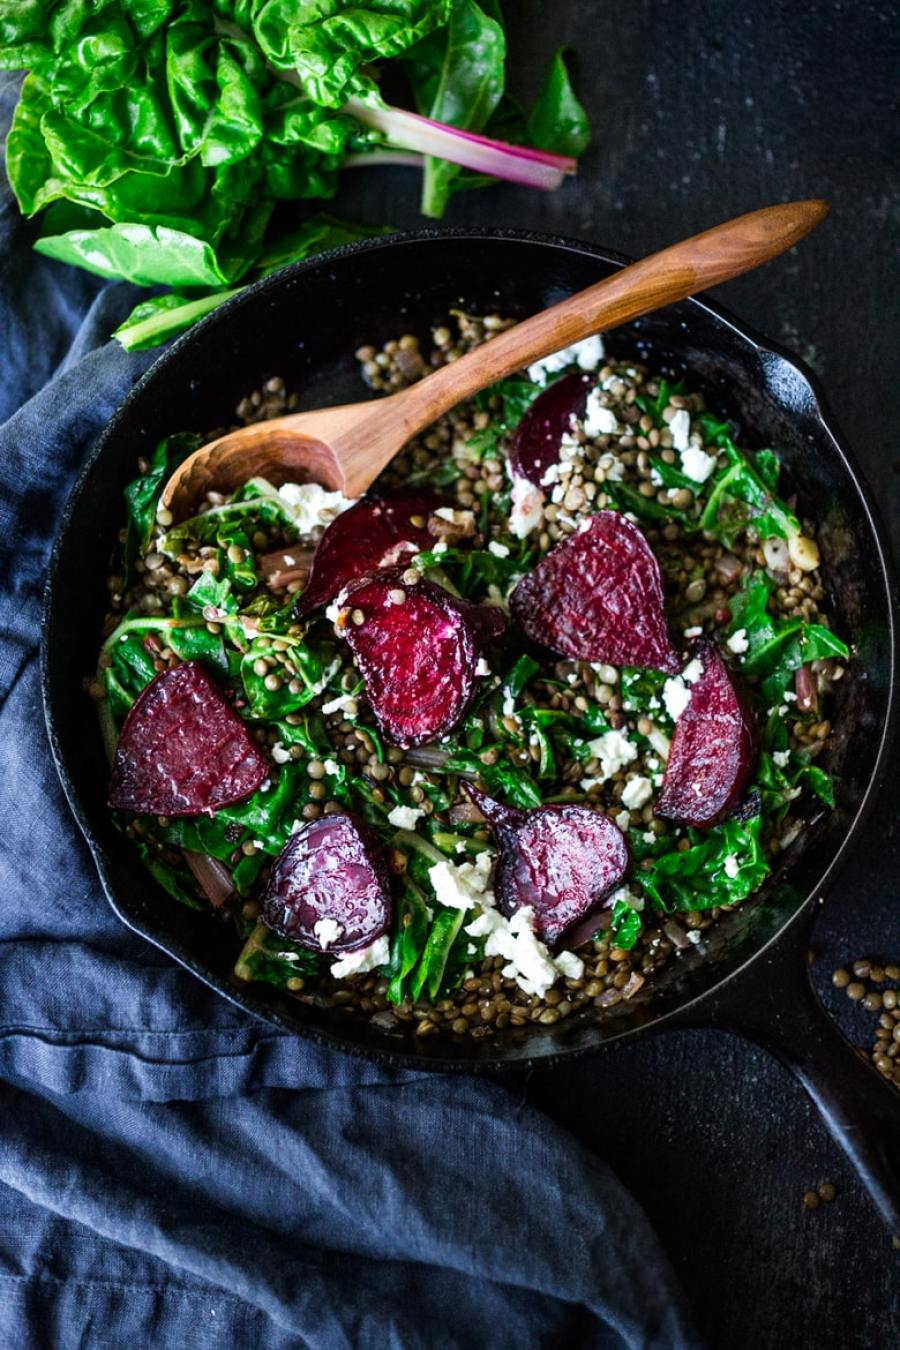 EAT CLEAN   20 VEGGIE BASED MEALS   Warm Lentils with wilted chard, roasted beets, goat cheese and spring herbs. A simple tasty vegetarian meal!   www.feastingathome.com